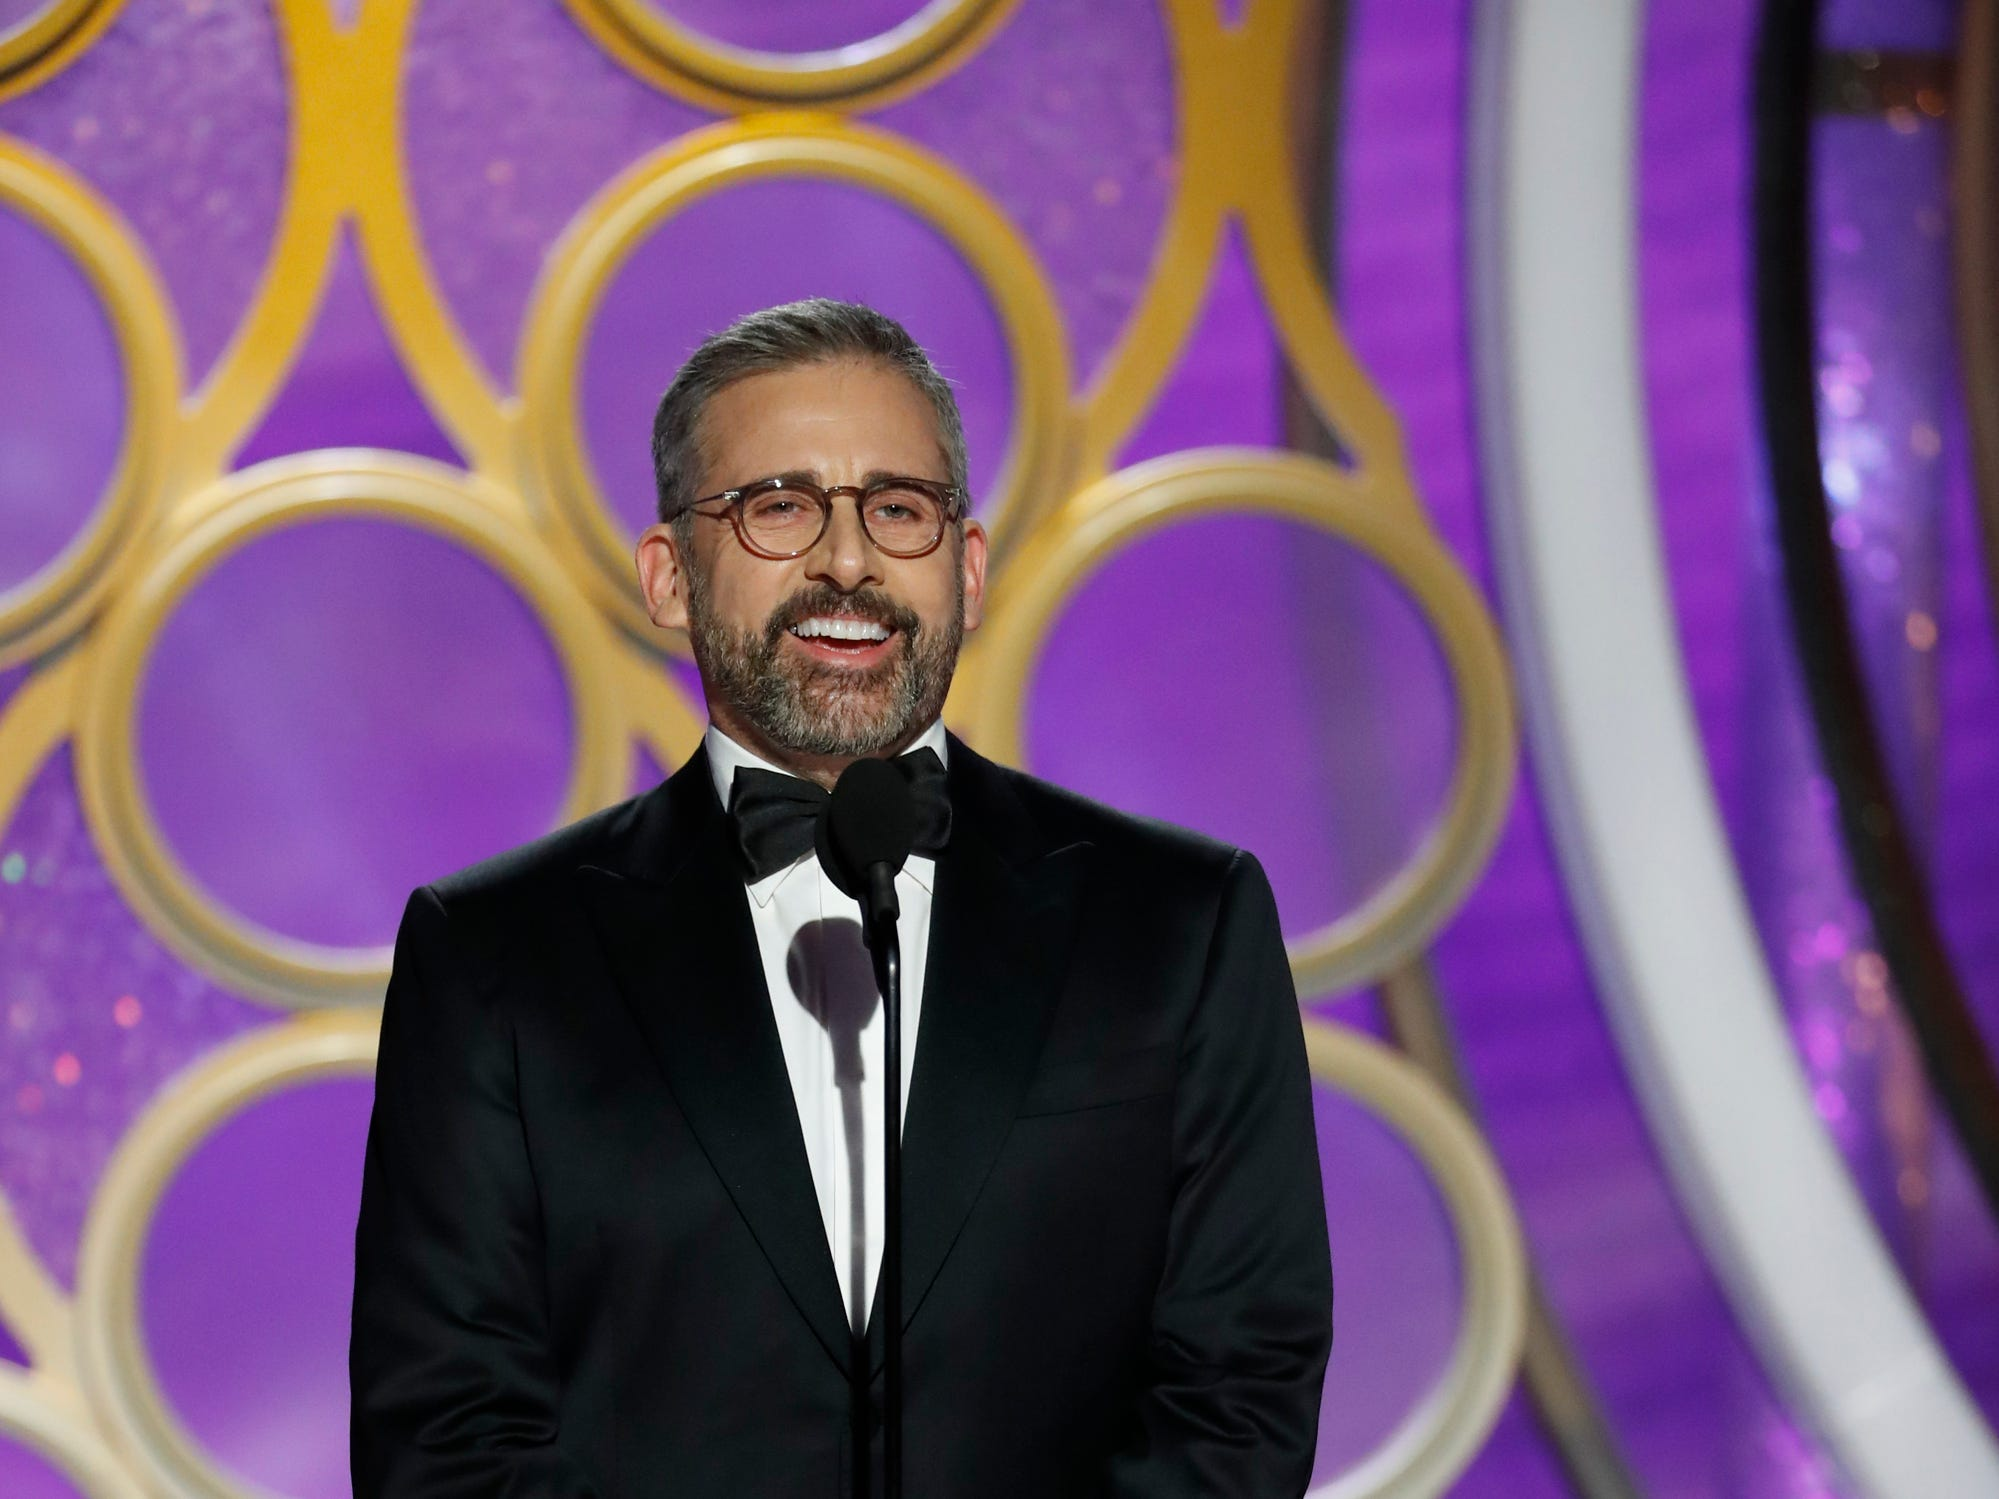 This image released by NBC shows presenter Steve Carell during the 76th Annual Golden Globe Awards at the Beverly Hilton Hotel.